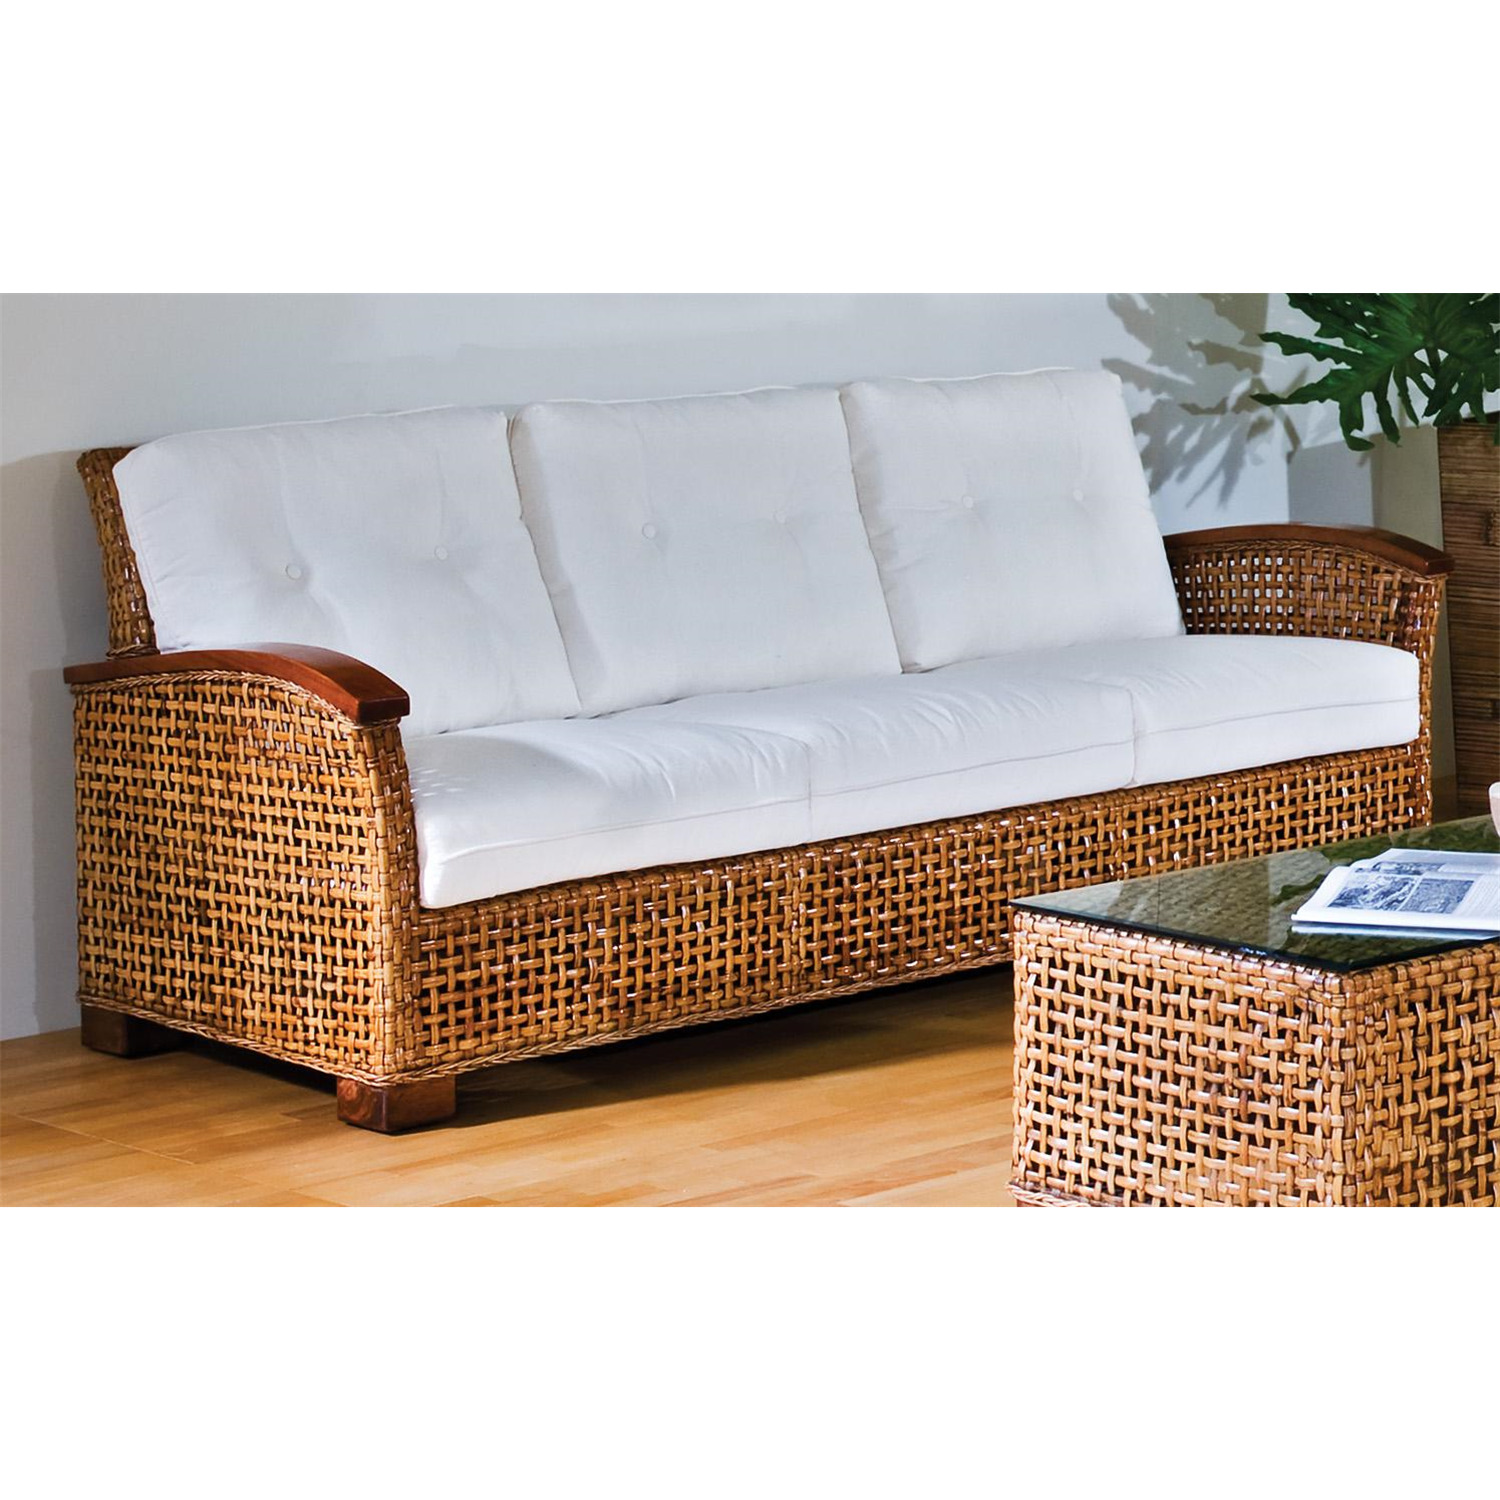 homemade modern ep 70 outdoor sofa corner sectional reviews rattan and wicker with cushions ojcommerce